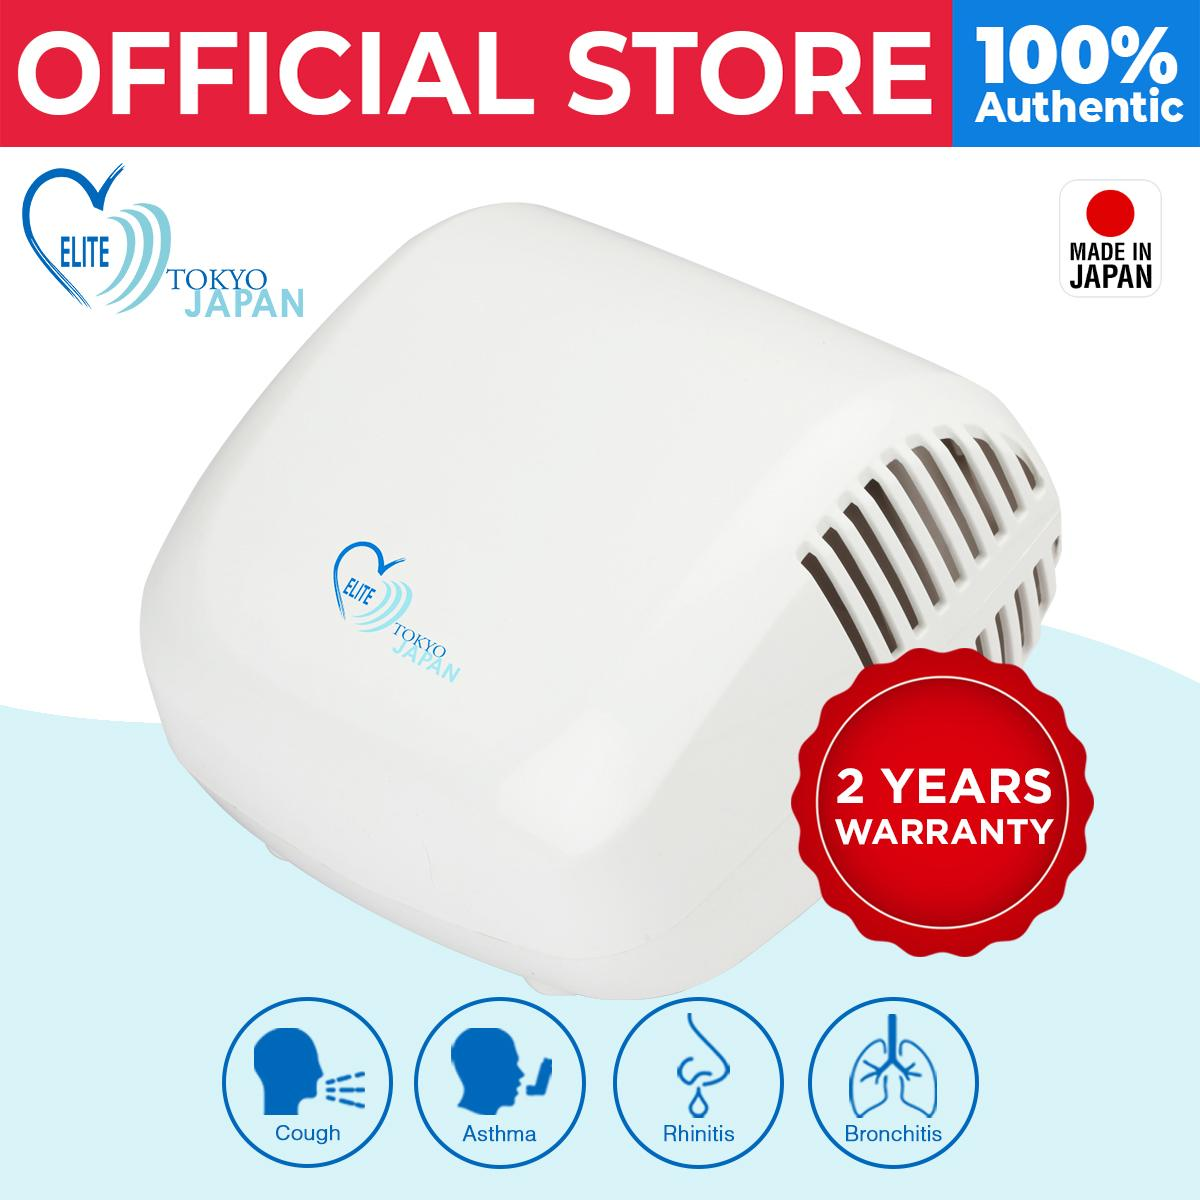 Elite Tokyo Japan Handyneb Sprint Nebulizer Sale With Complete Accessories By Medical Supplies Philippines.